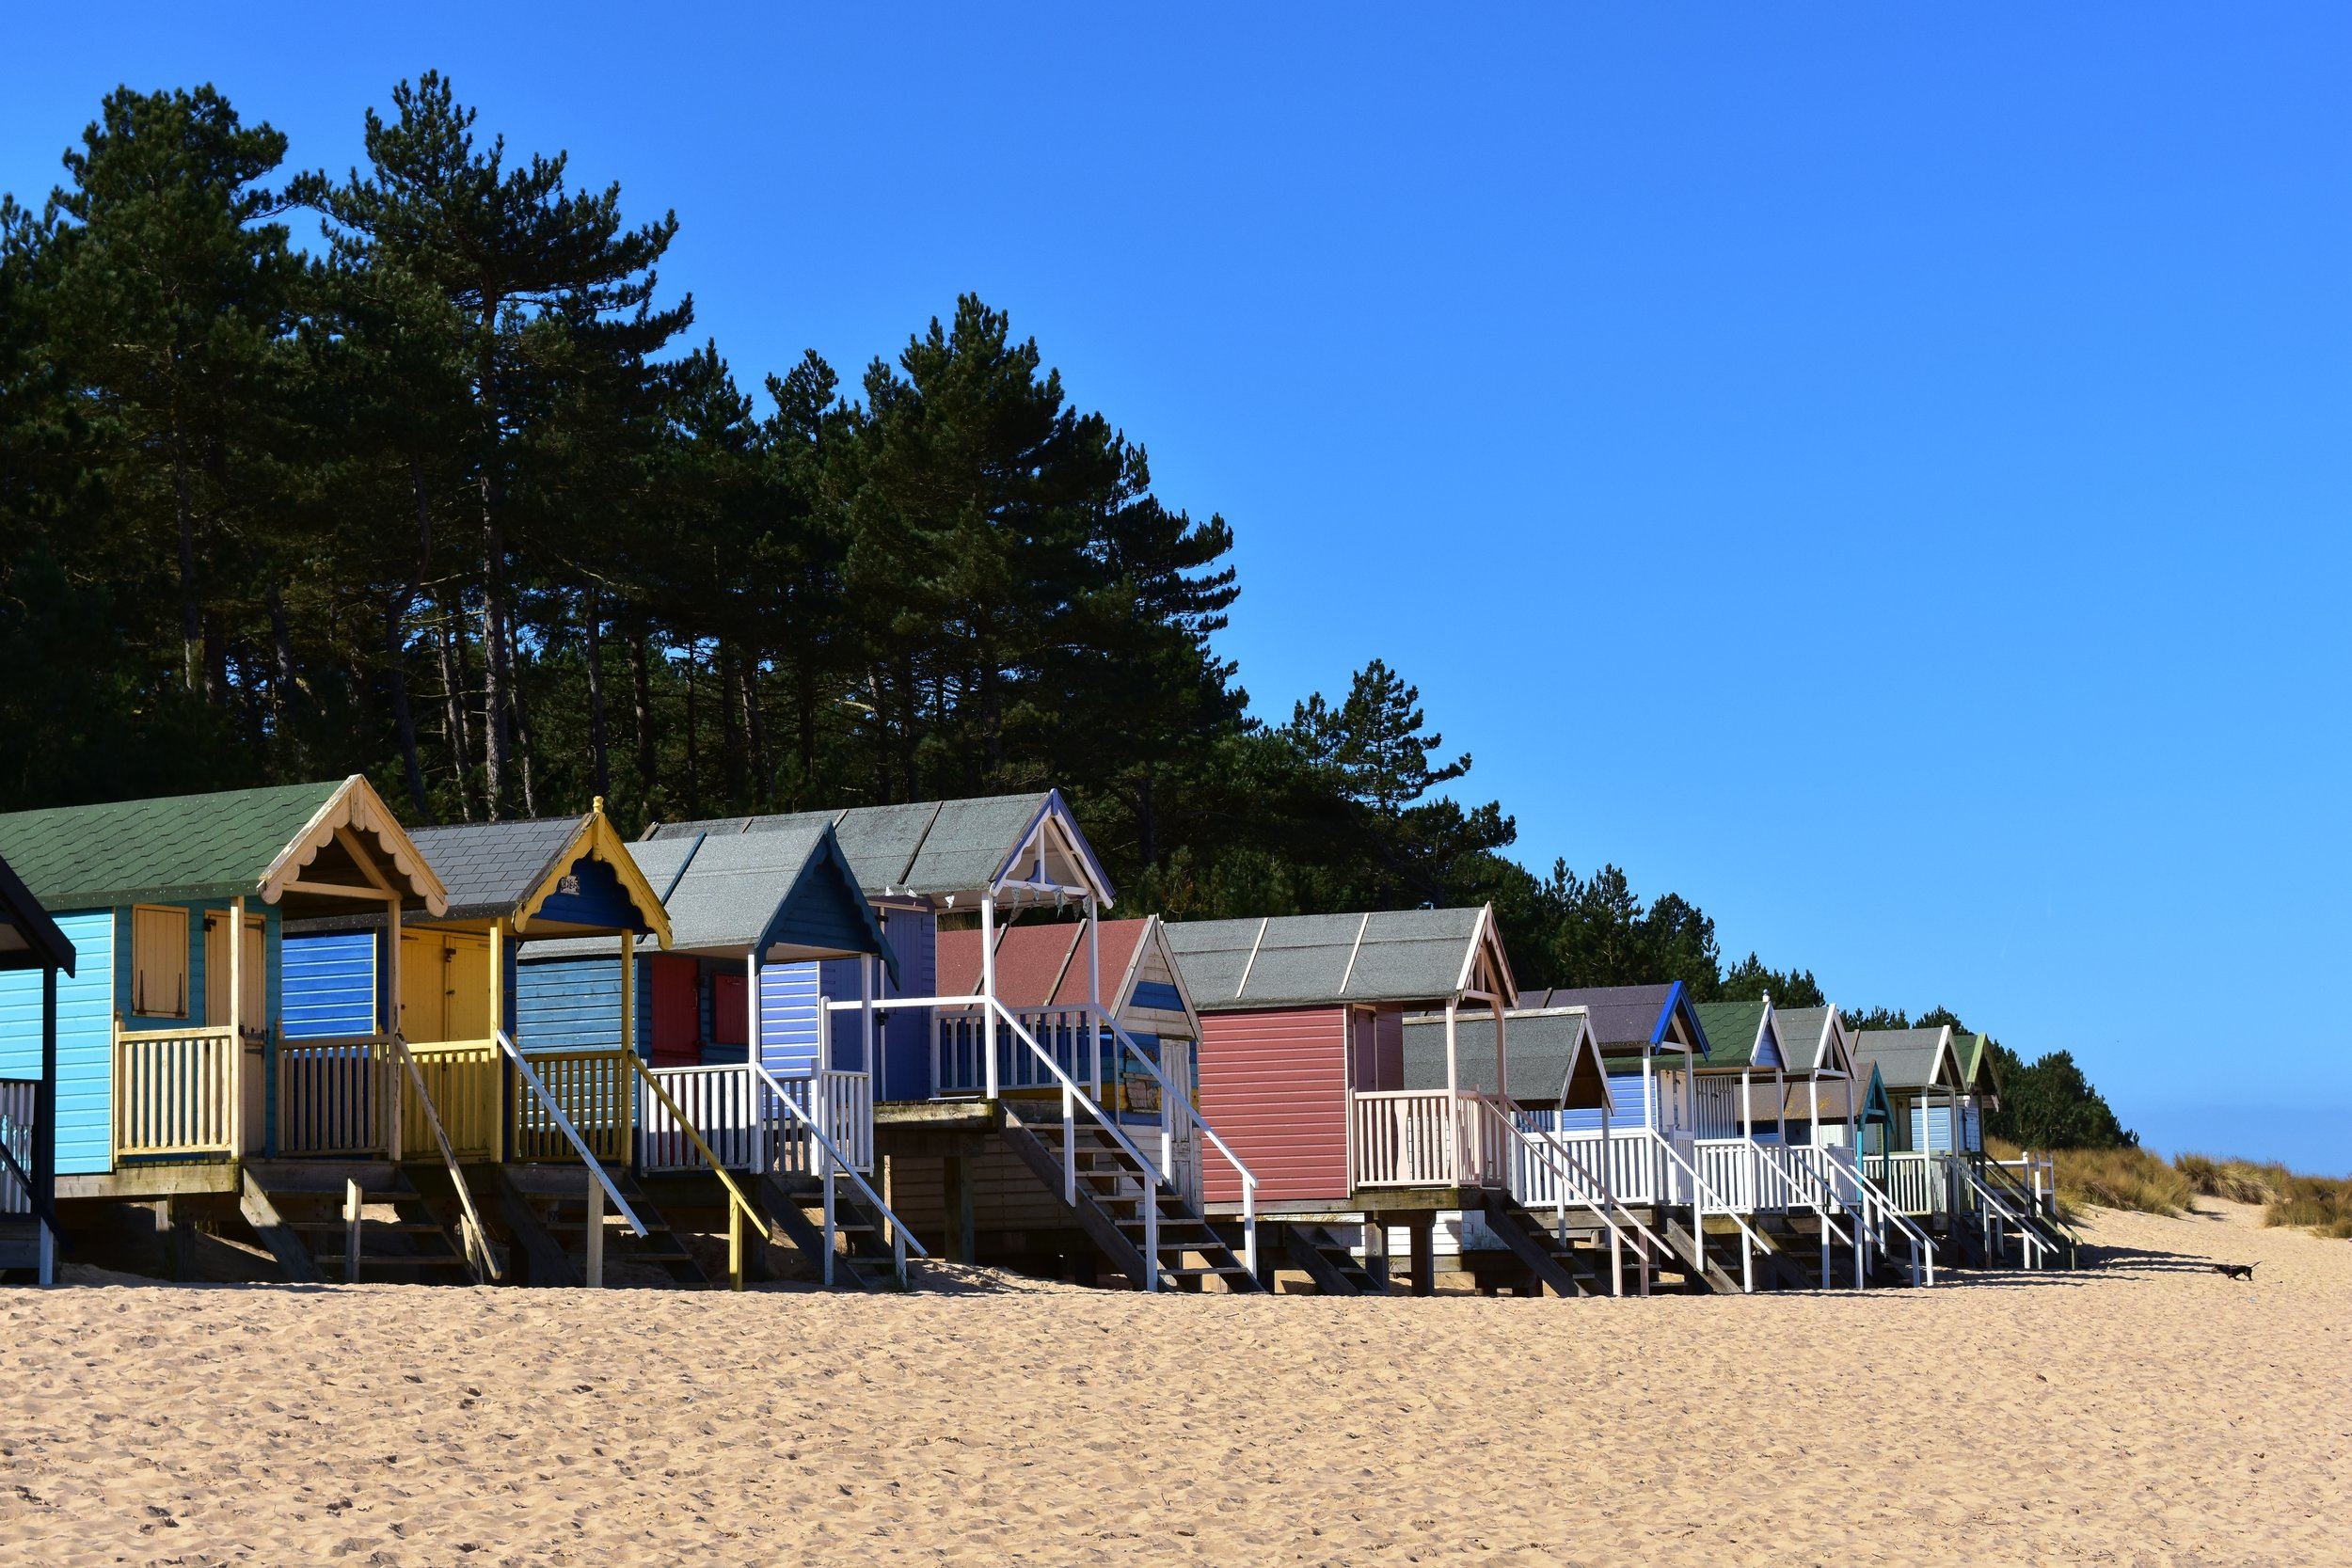 Wells-next-the-Sea - The beautiful sandy beach with its colourful beach huts set against a backtrop of pine trees and sand dunes is easily accessible from the town. Take a walk from the harbour or catch the miniature steam train.  The busy quay is a popular place for crabbing and watching the fishing boats.  Take a boat trip to explore the harbour or to spot some seals.